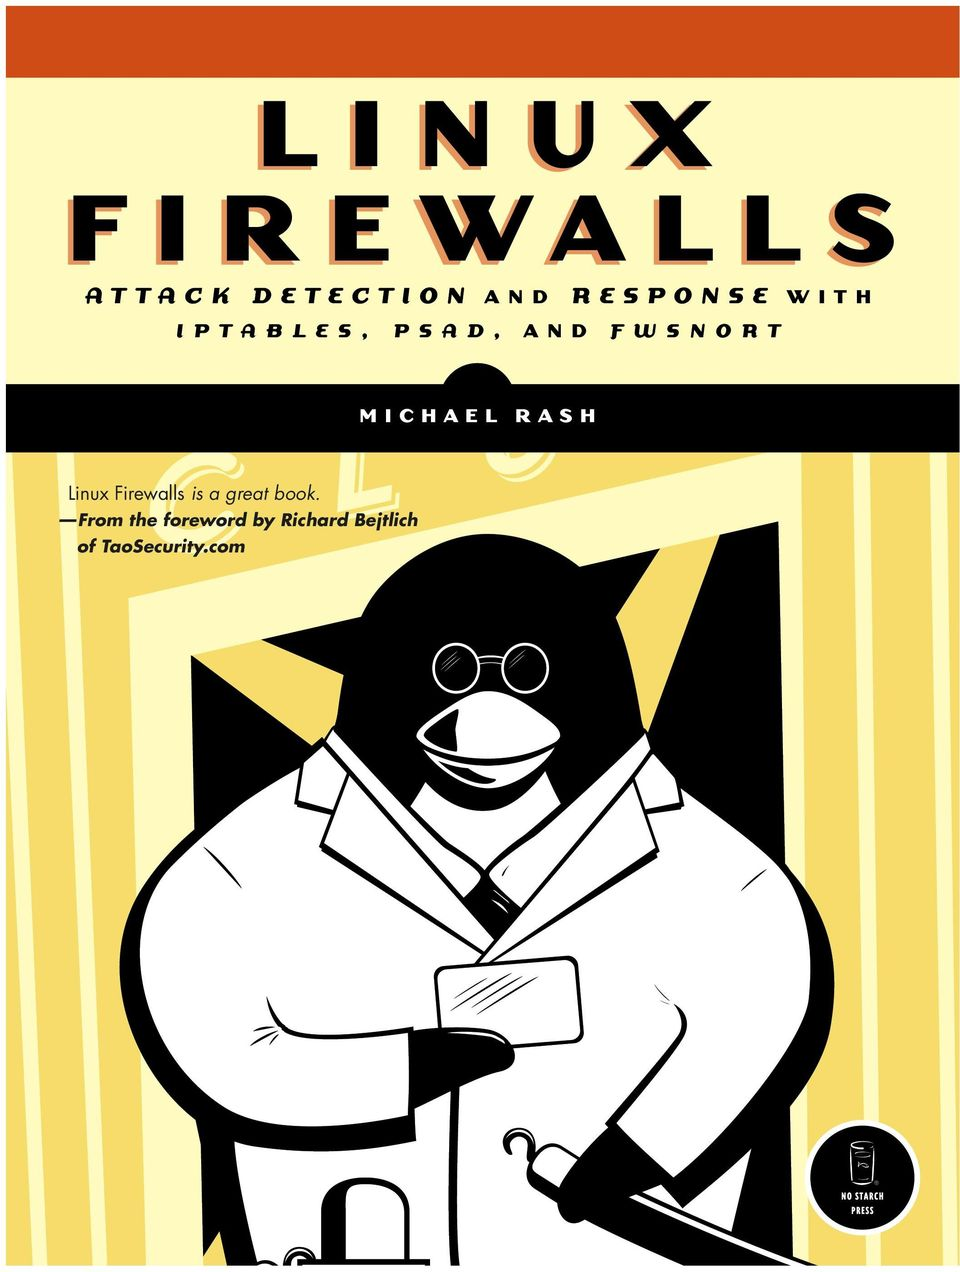 S N O R T M I C H A E L R A S H Linux Firewalls is a great